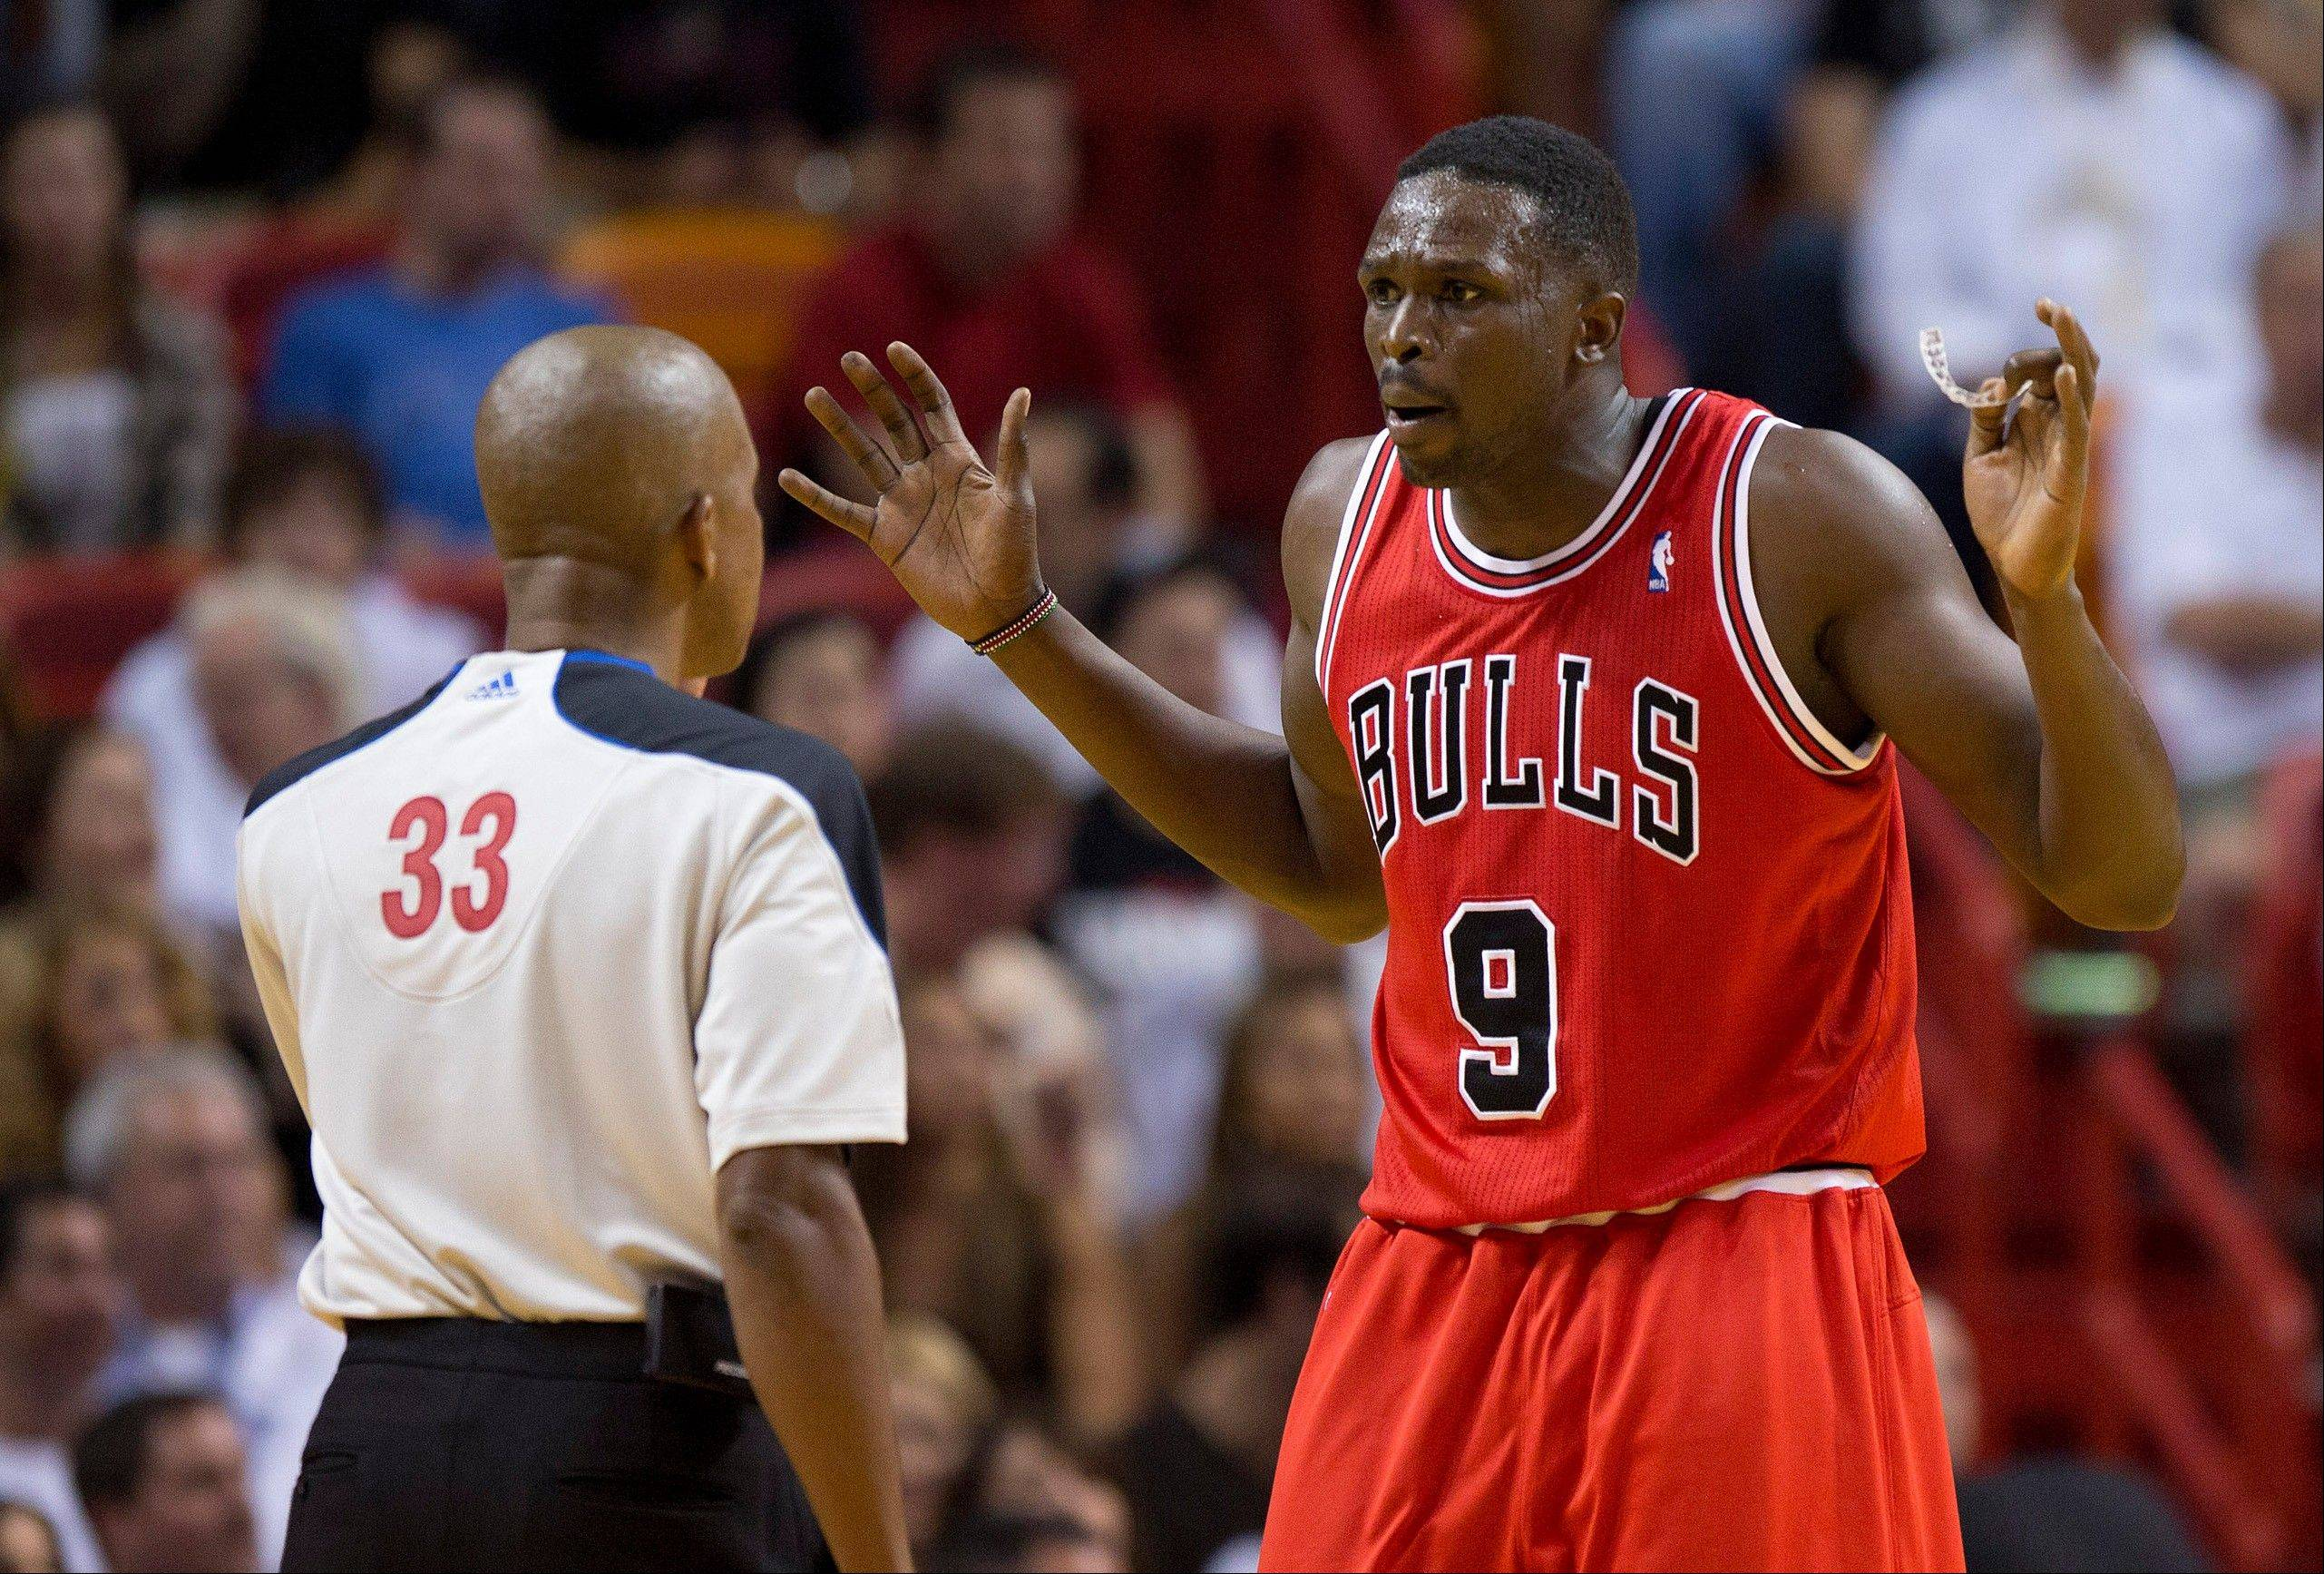 The Bulls� Luol Deng protests a foul call to official Sean Corbin during Tuesday�s season-opening loss at Miami. Deng was on the bench with 3 fouls during a 17-0 Heat run in the second quarter.